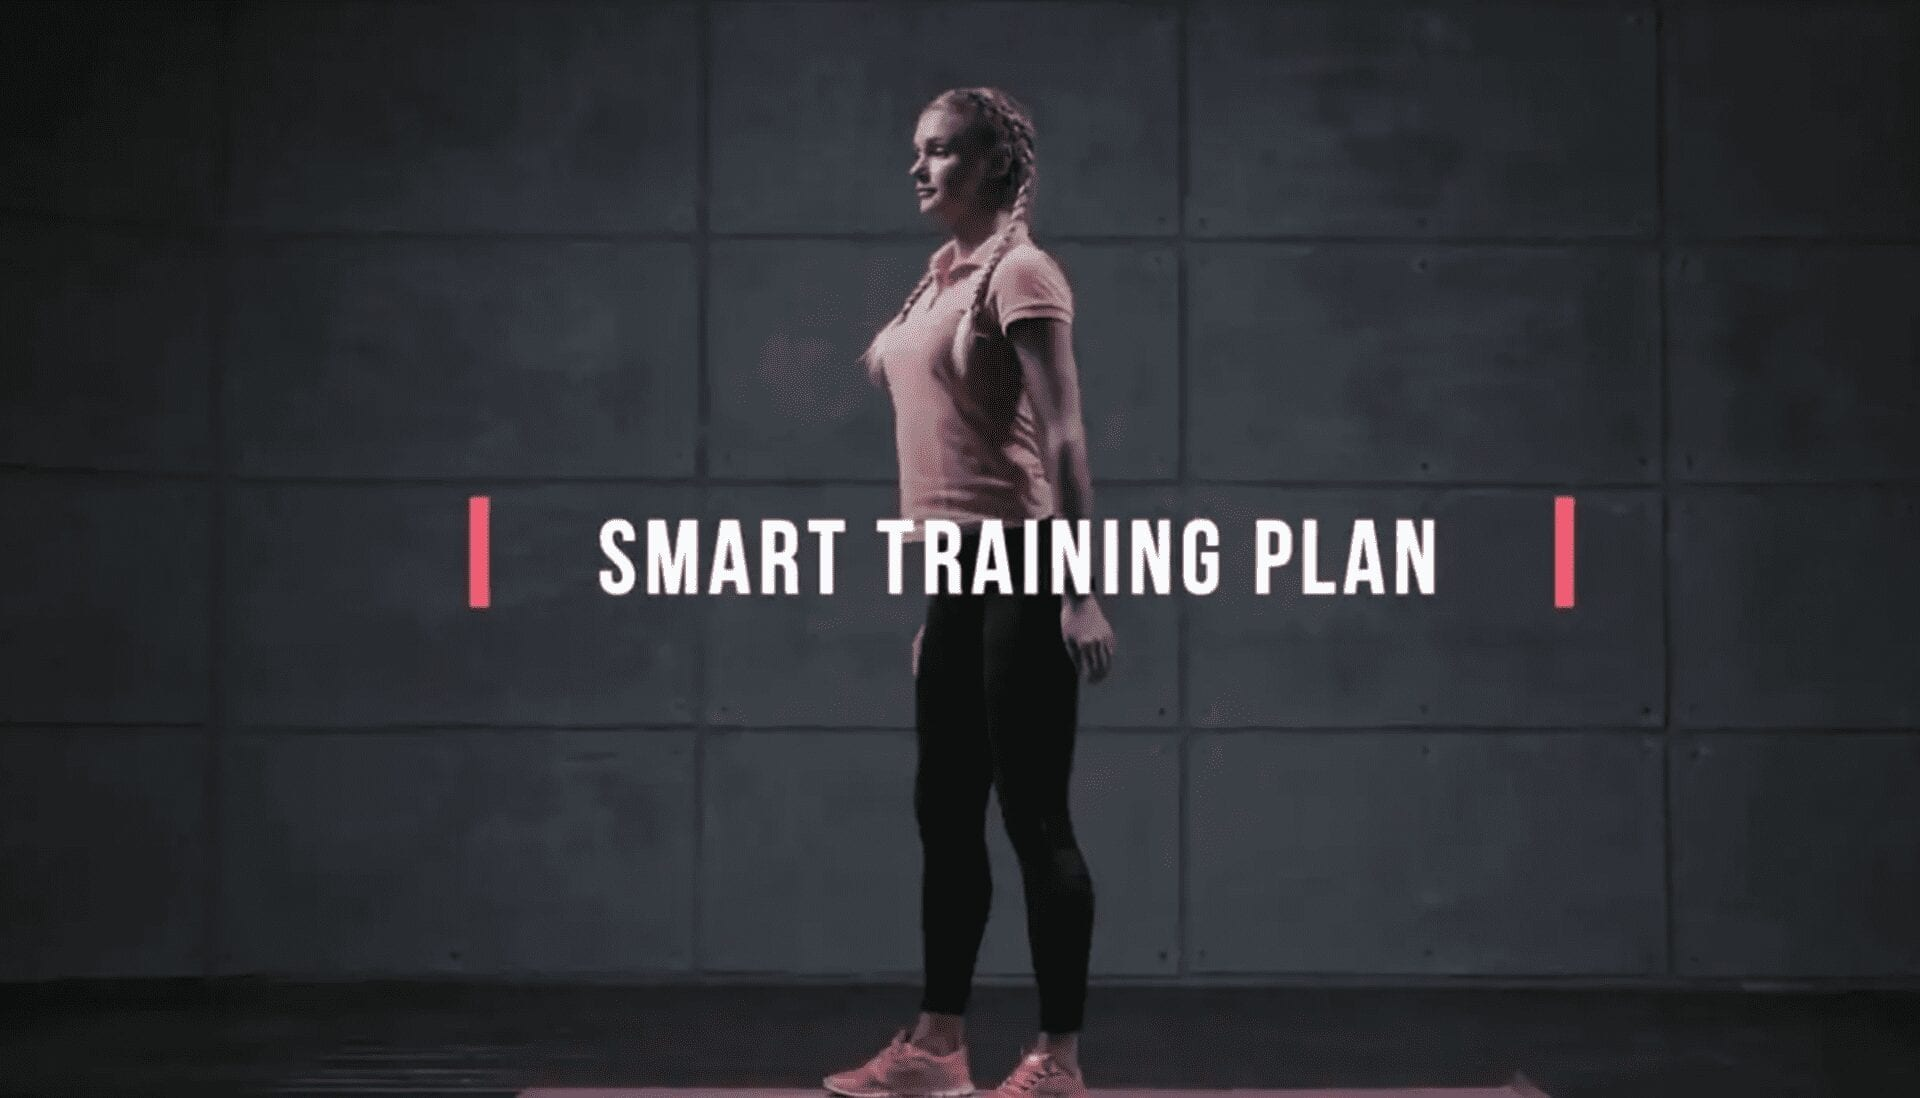 Fitness app UA video